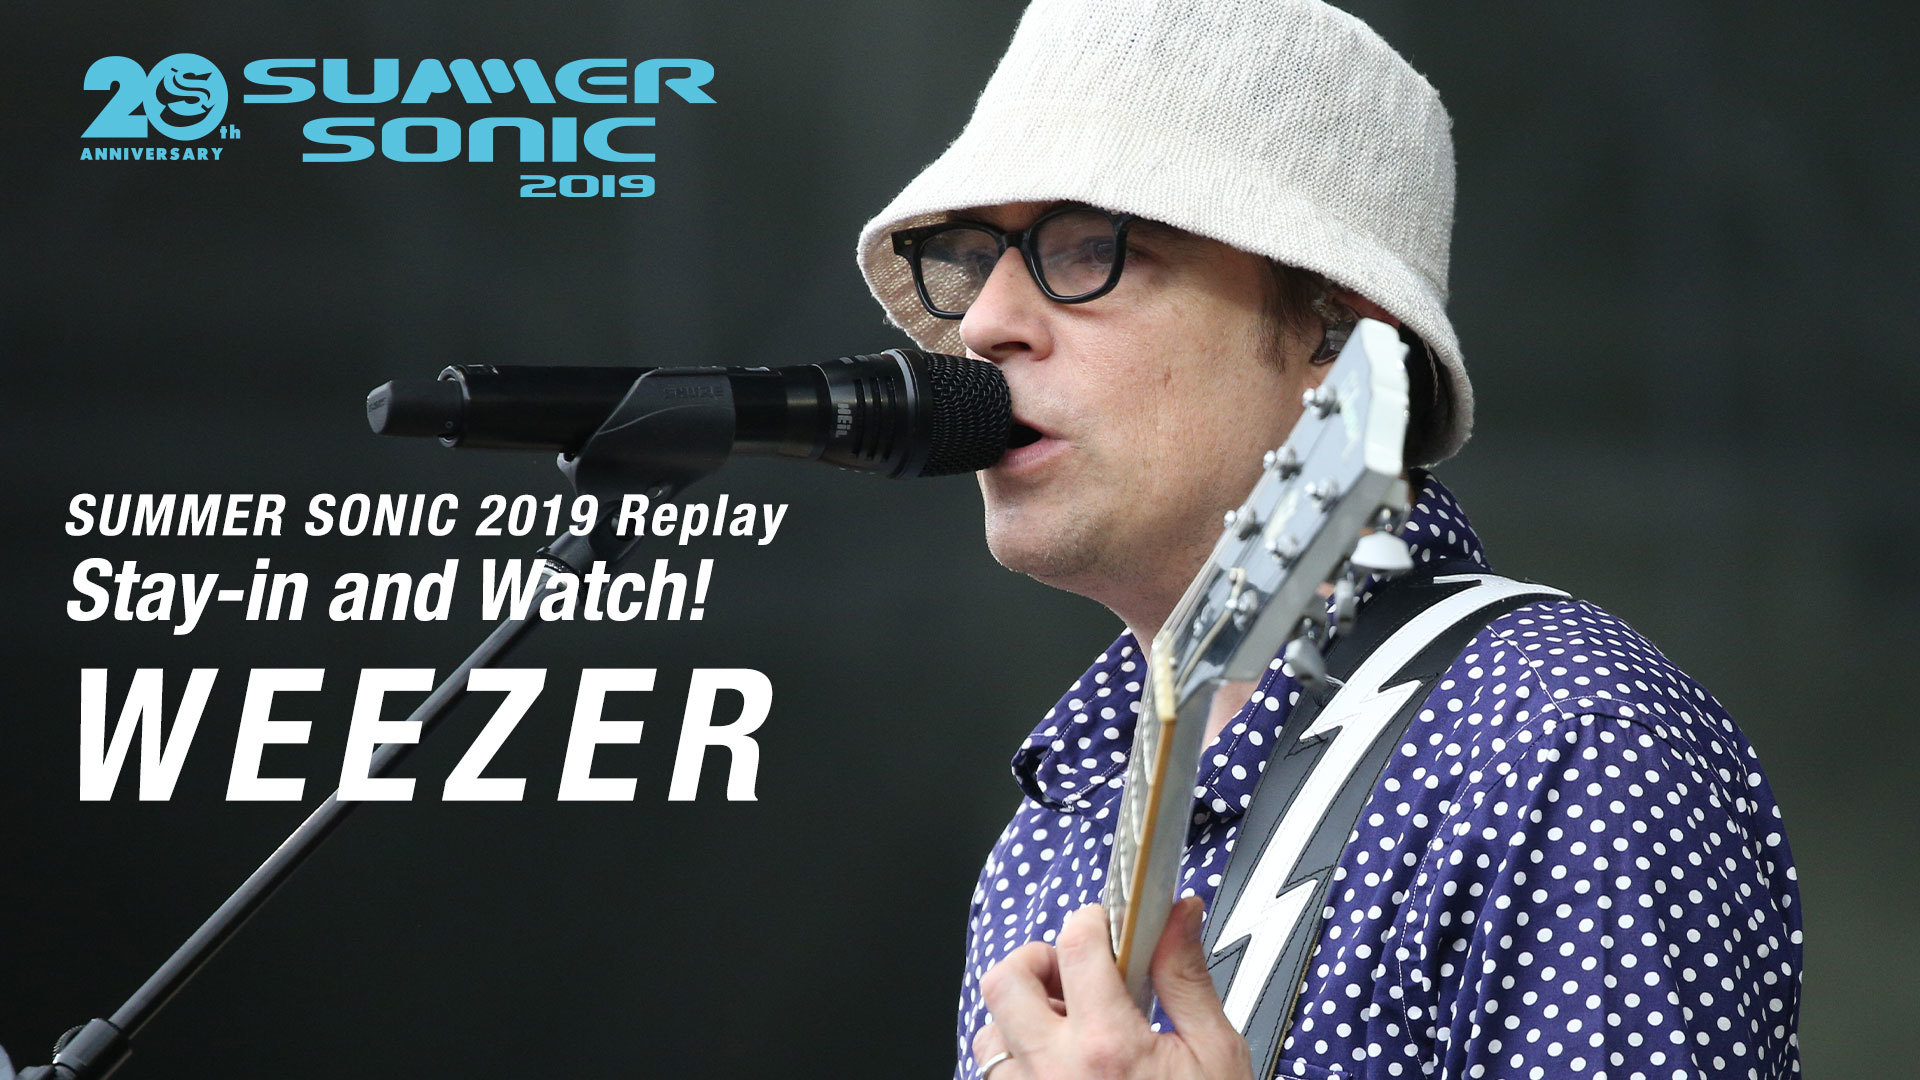 SUMMER SONIC 2019 Replay:Stay-in and Watch!